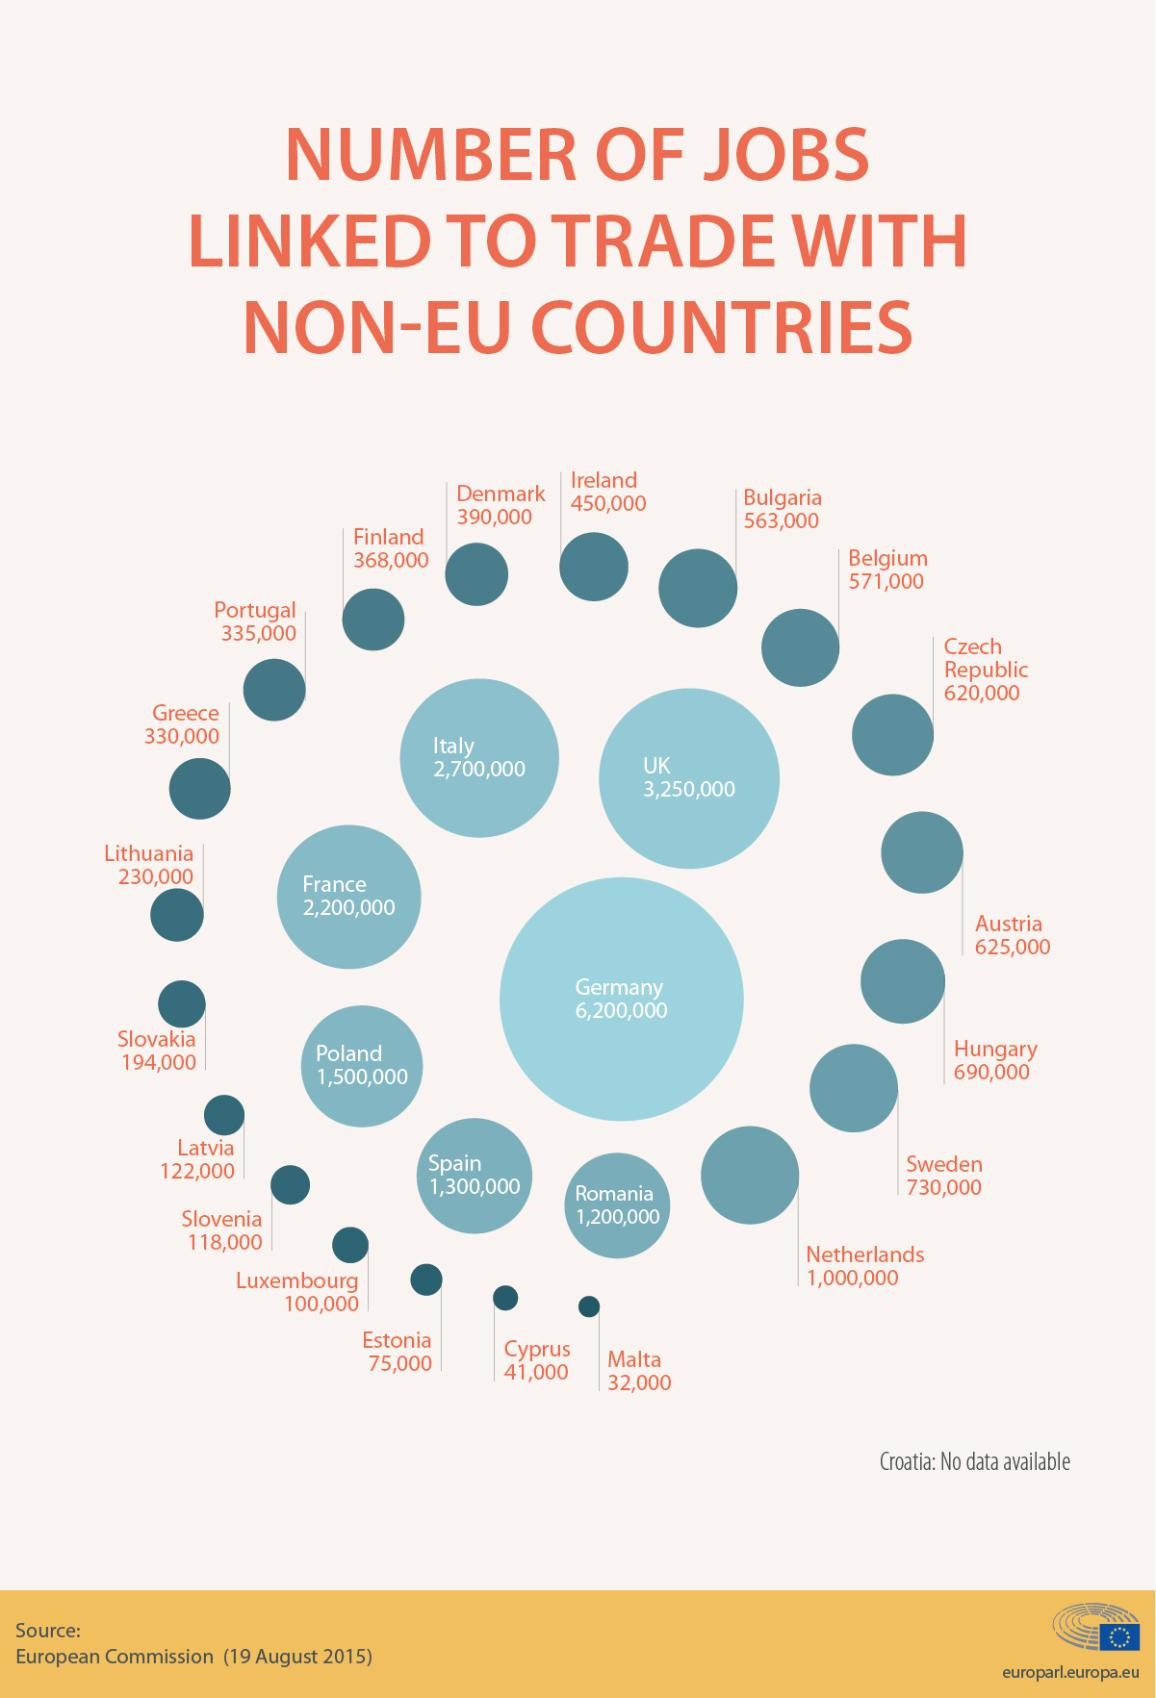 infographic on the number of EU jobs linked to trade with non-EU countries in 2015 (per country)